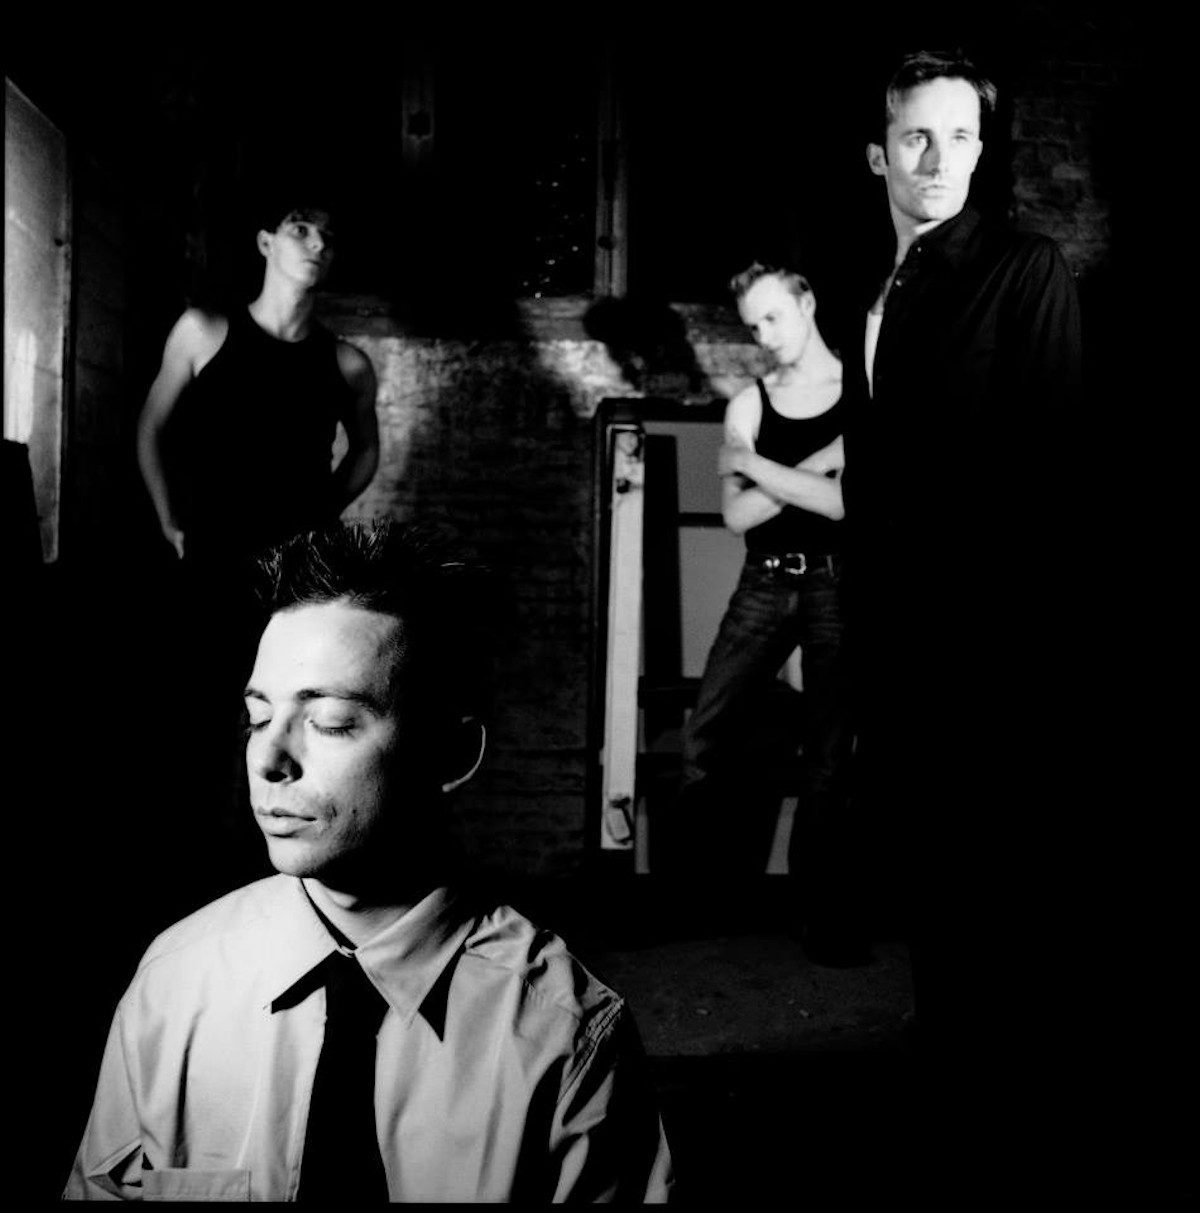 Belgian post-punk / new wave act Spiral of Silence returns after almost 20 years of total silence